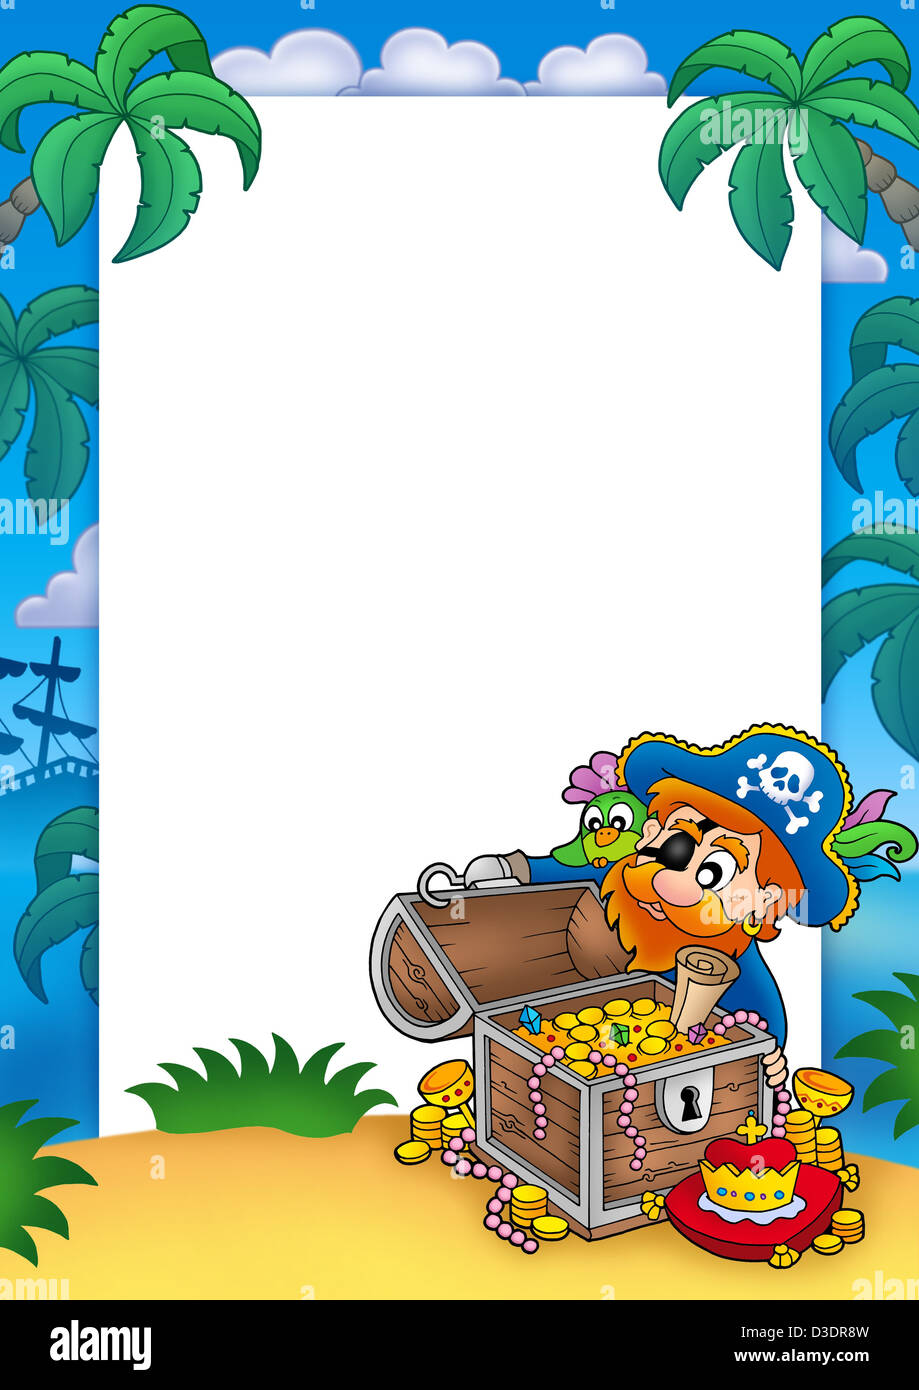 Frame with pirate and treasure - color illustration Stock Photo ...